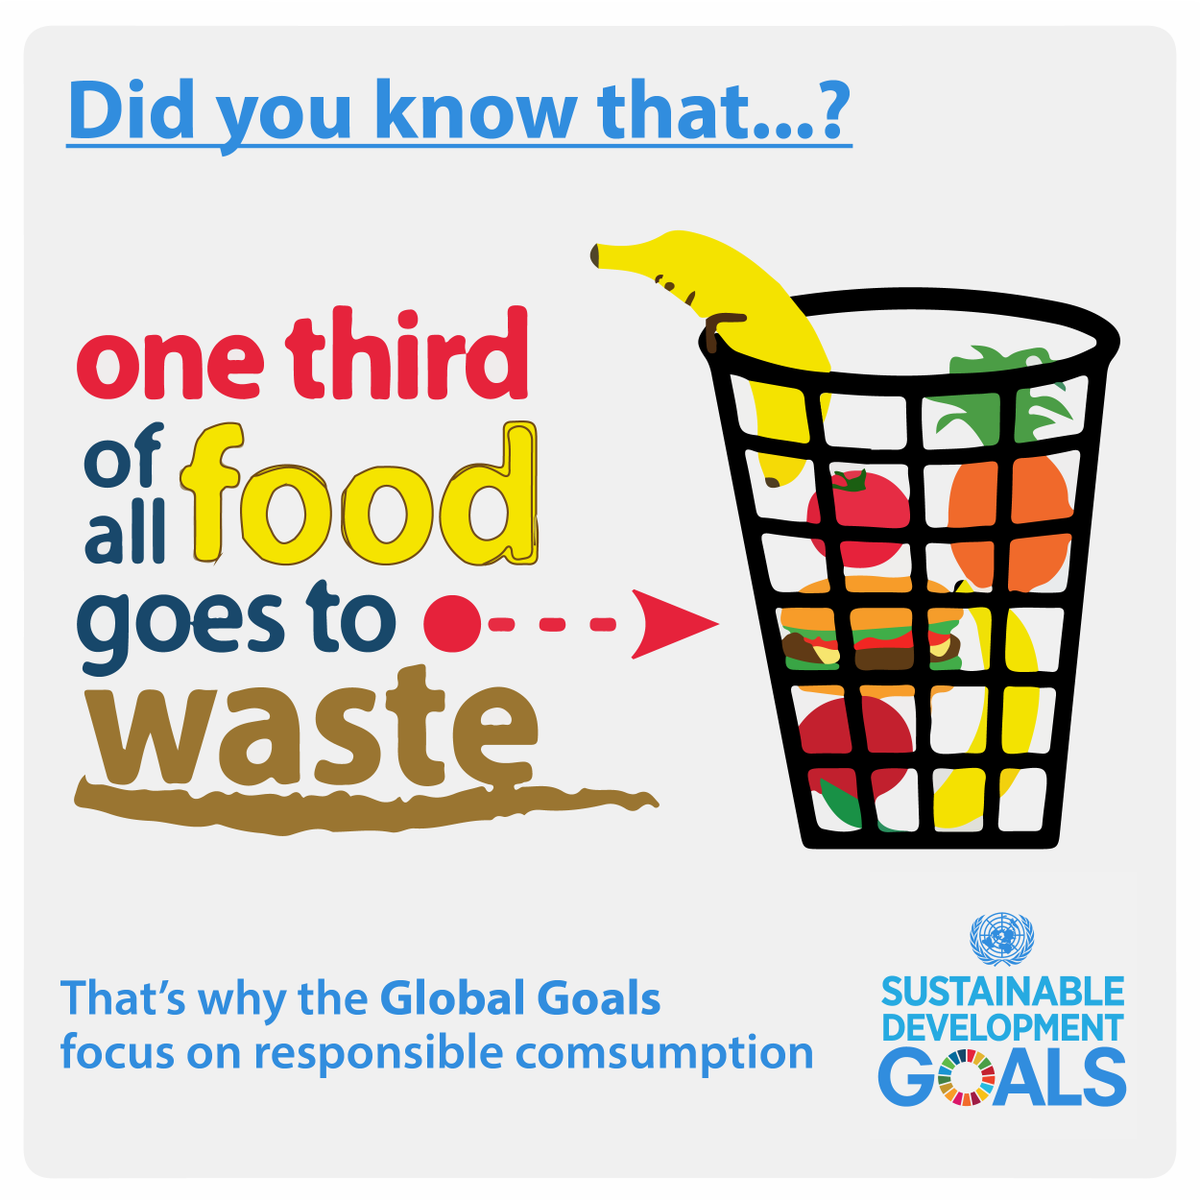 On Sunday's Sustainable Gastronomy Day, have a look at @FAOnews' 9 tips on how to reduce food waste: https://t.co/Ewfm28Hu3s